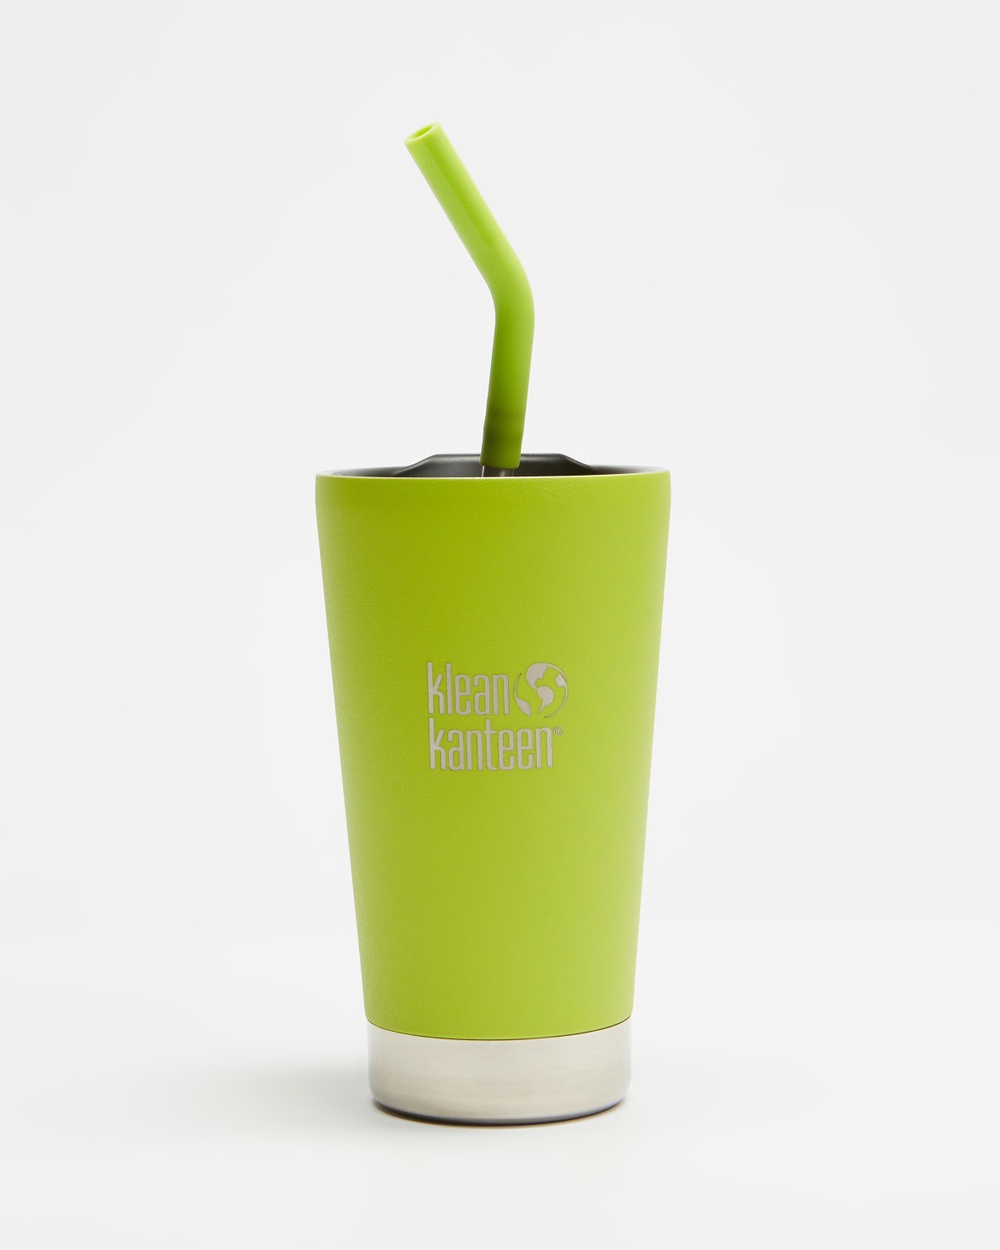 Klean Kanteen 16oz Insulated Tumbler with Straw Lid Running Juicy Pear